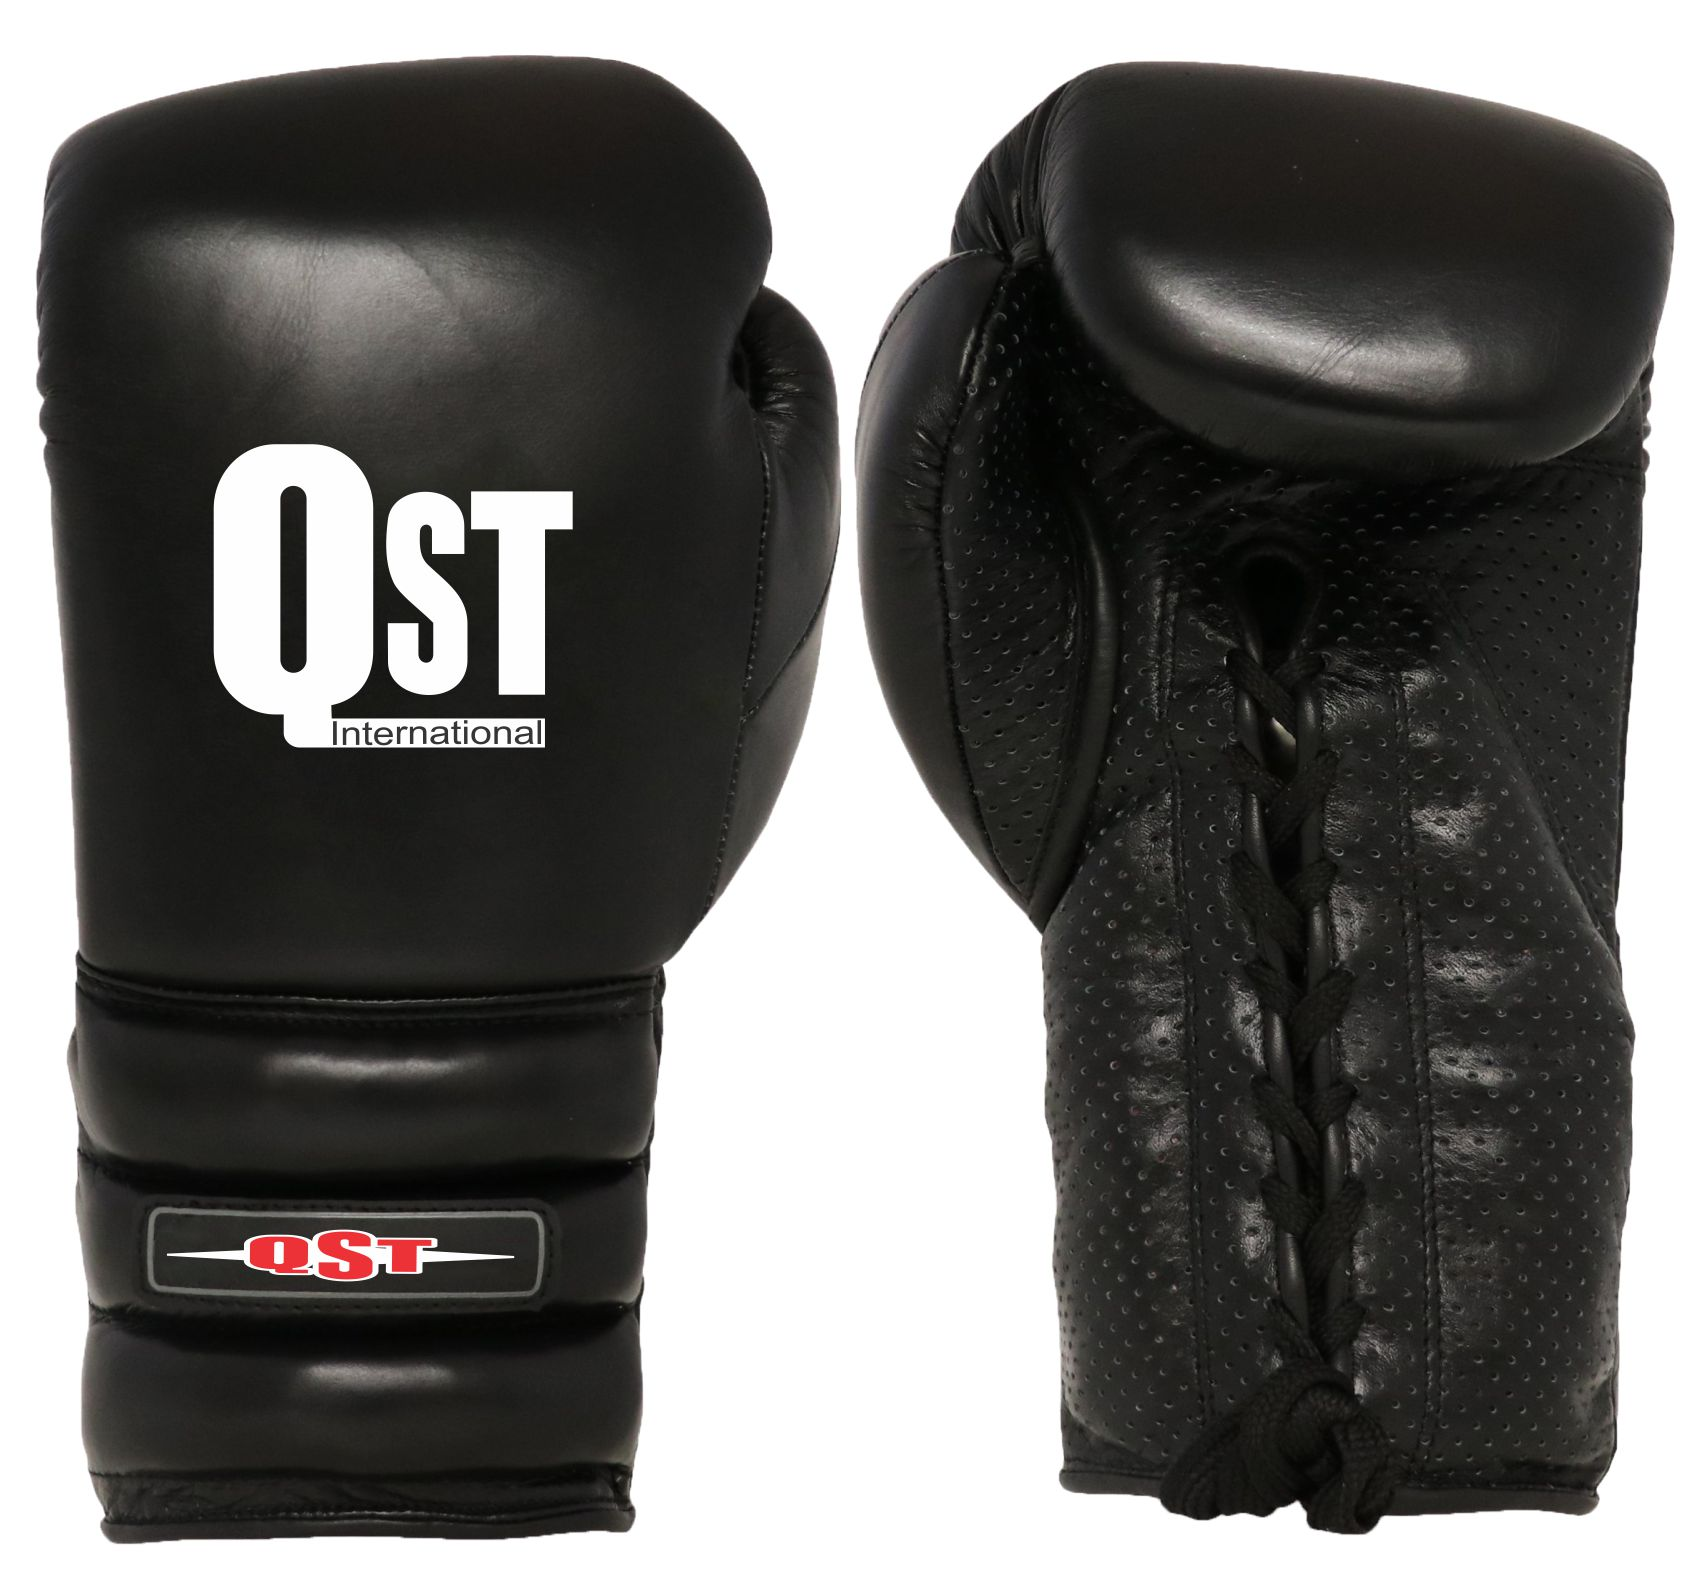 Lace up Boxing Gloves - PRG-3257